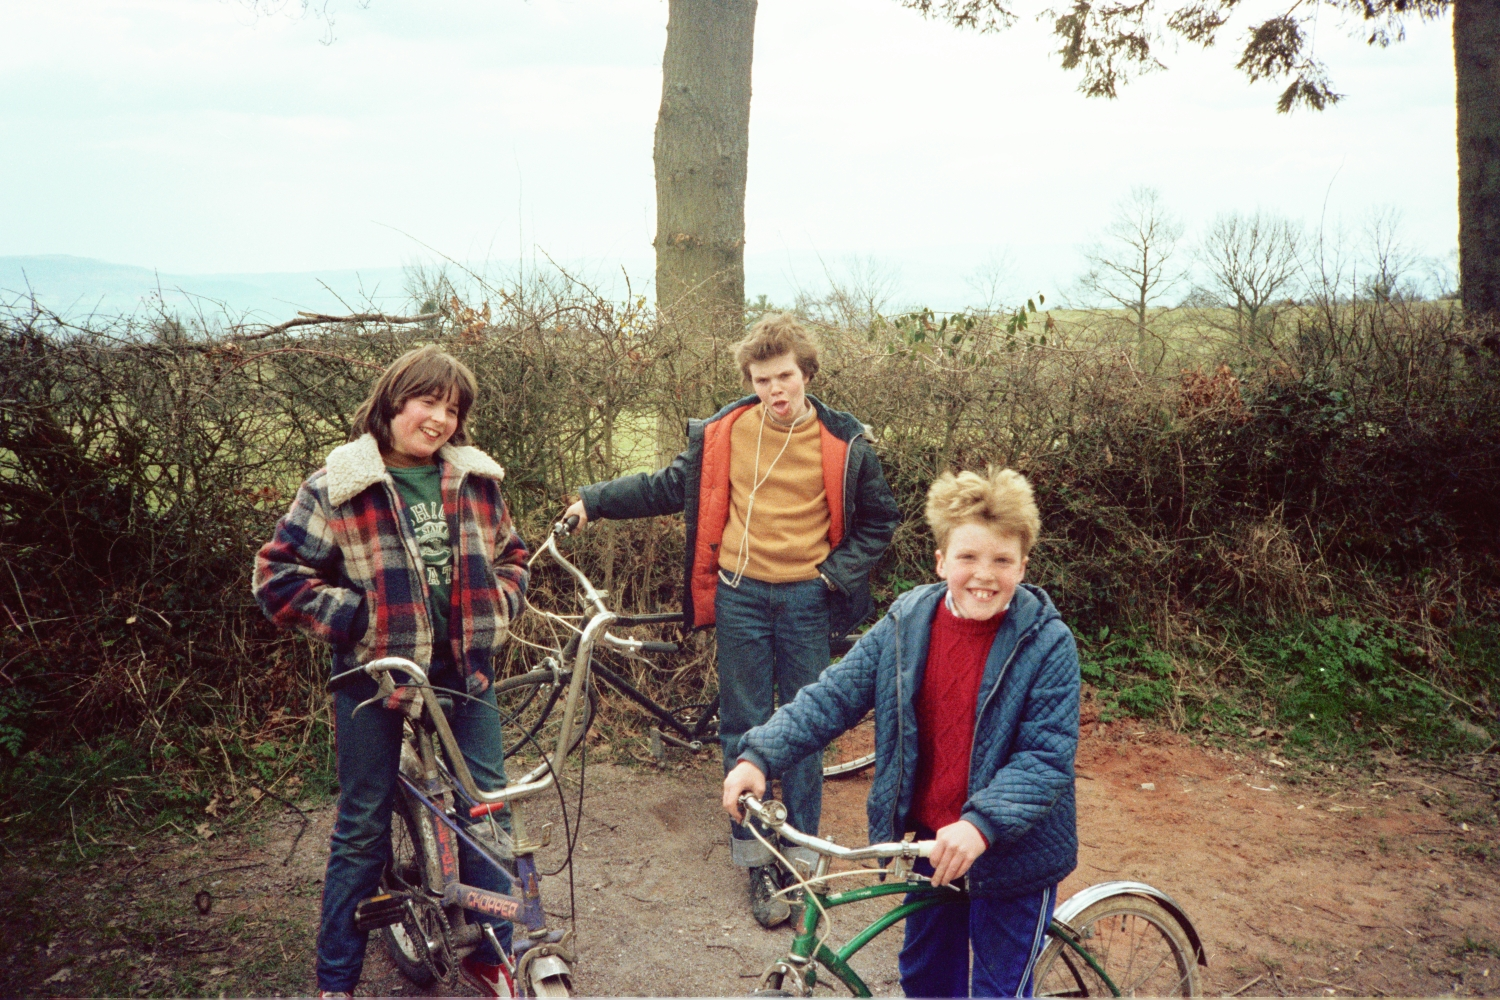 Helen Joice, Russel Shearer and Matt Shearer on their bikes, at Amberslone, 1982